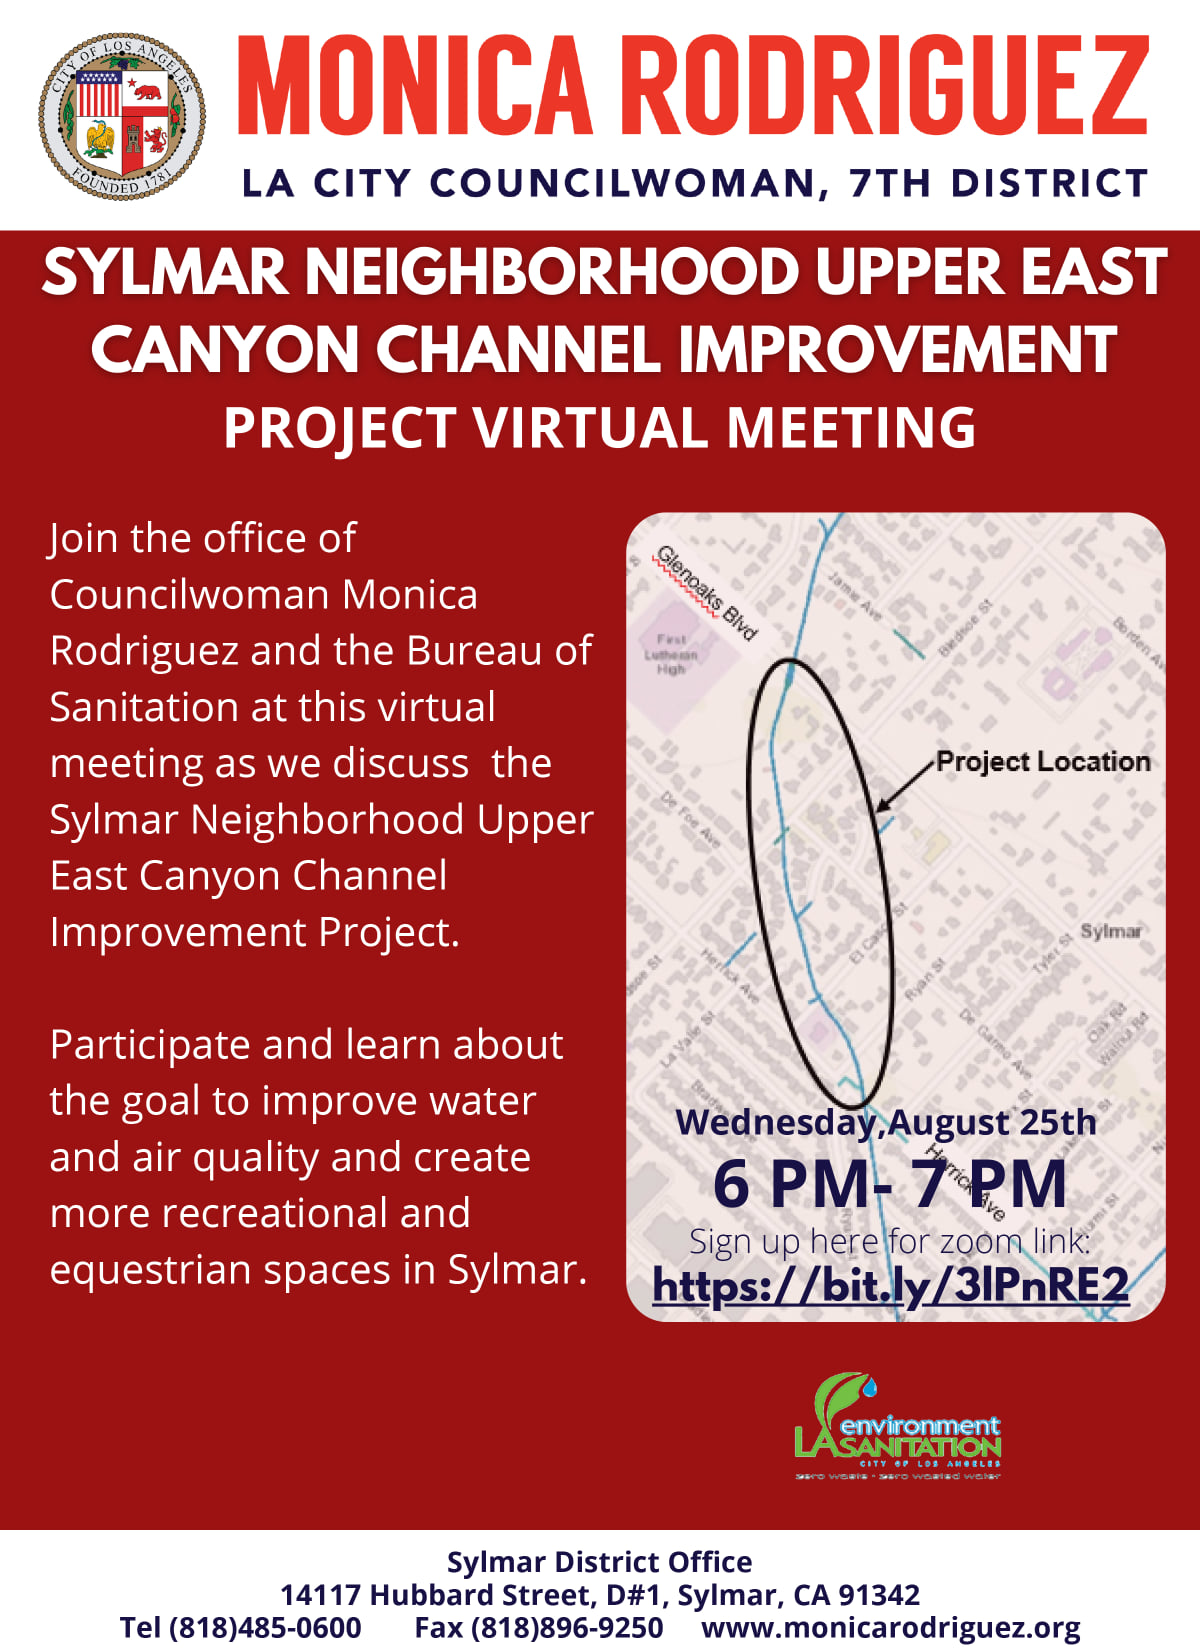 discuss the Sylmar Upper East Canyon Channel Improvement Project